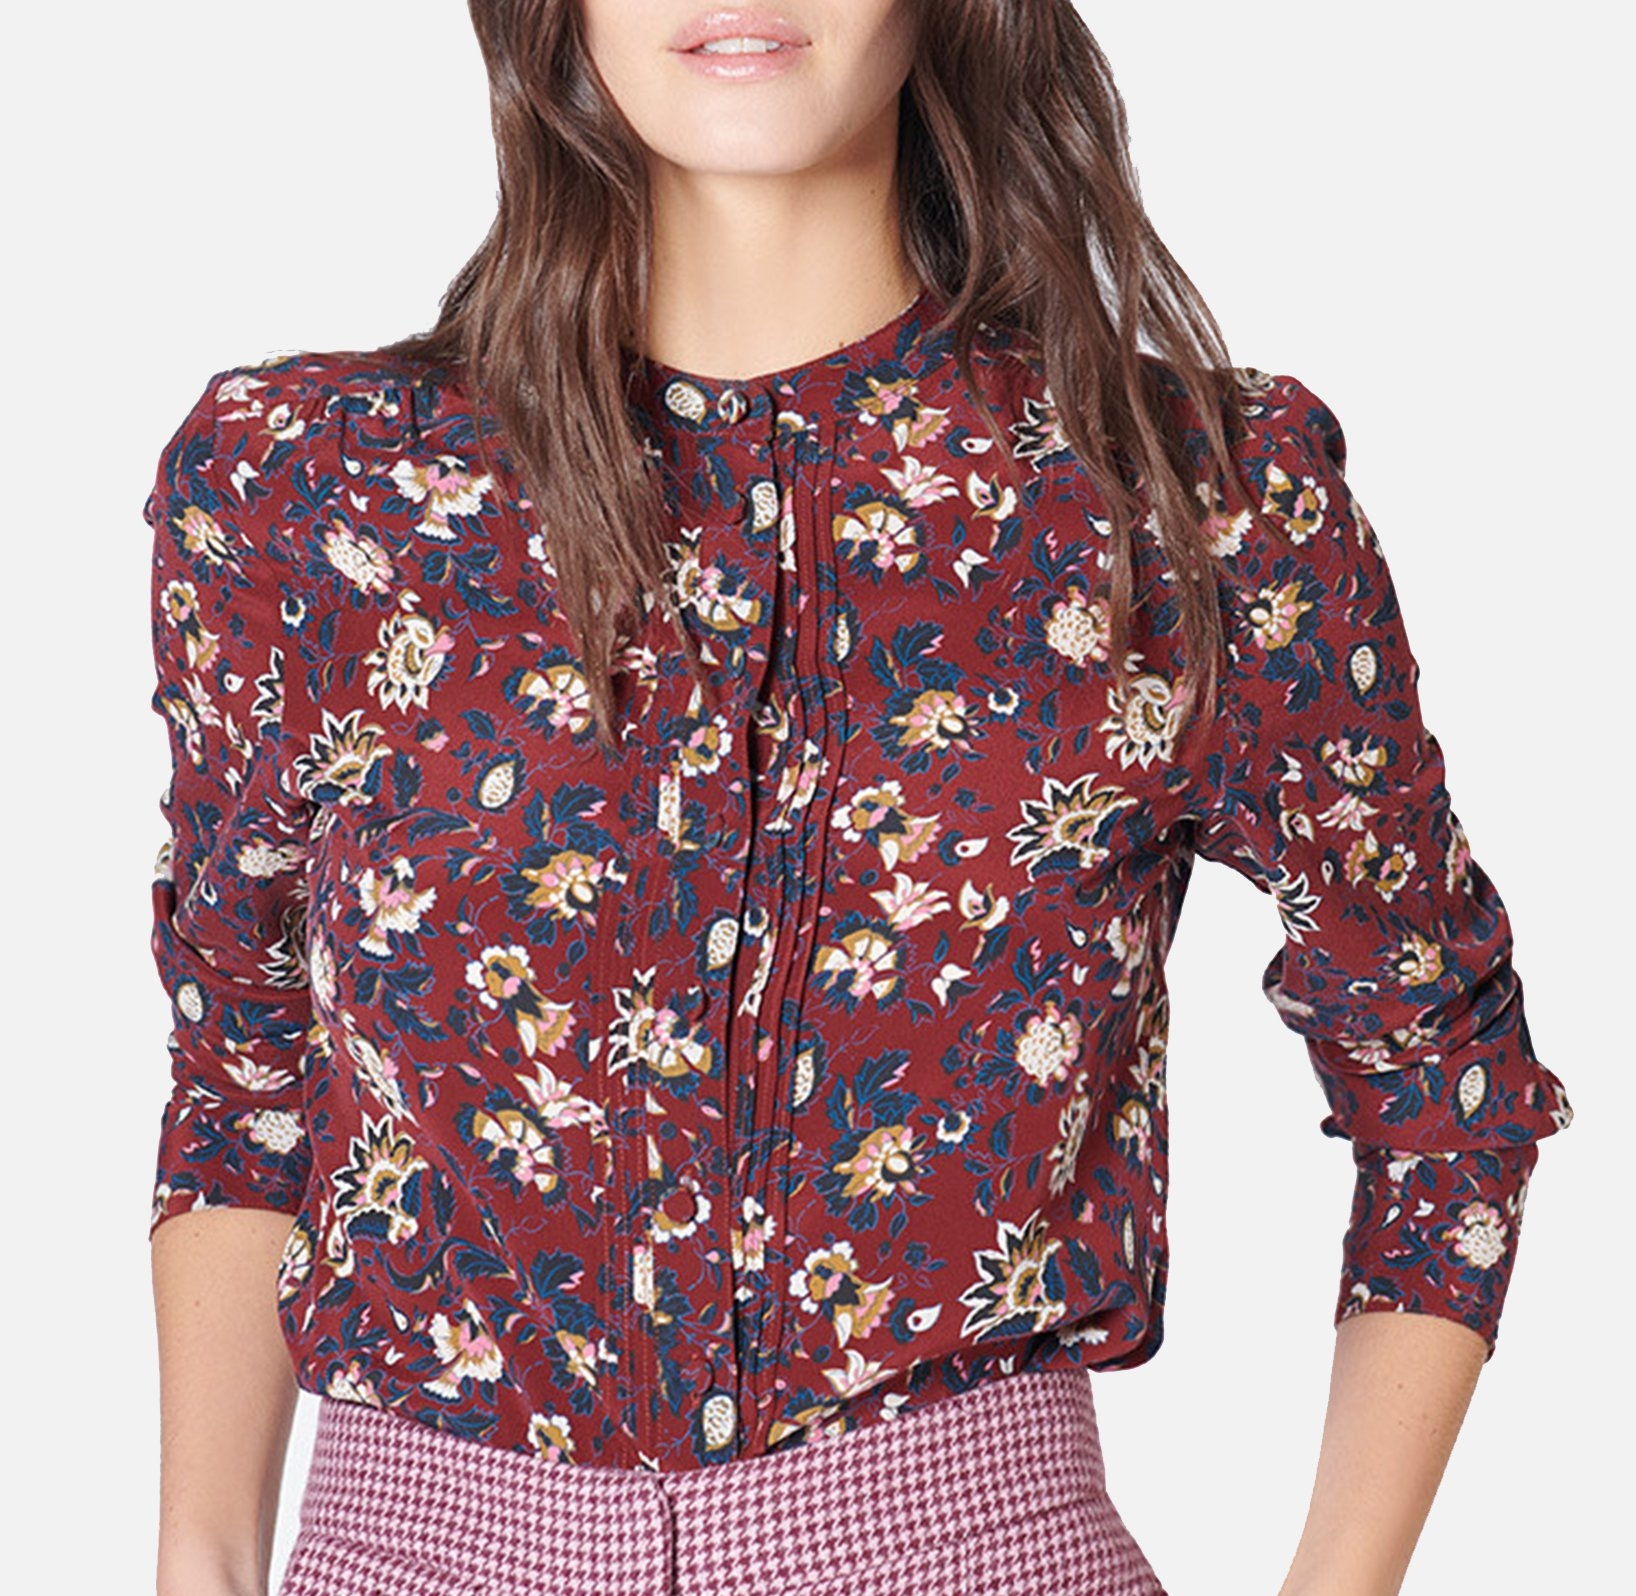 Alta Tunic - Bordeaux/Multi - $395